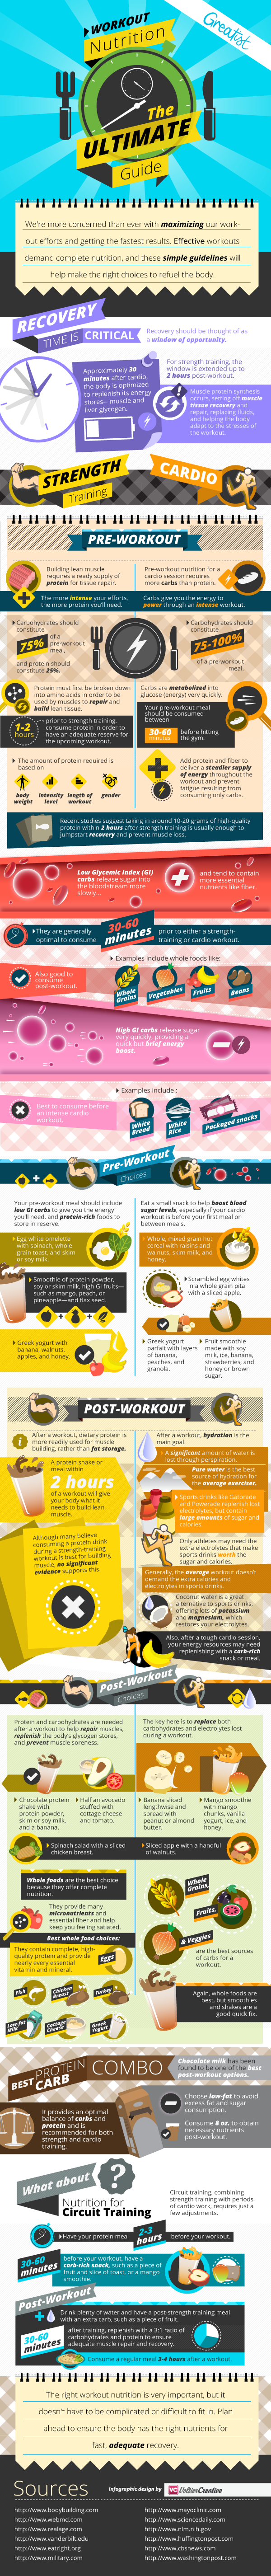 pre & post workout meals